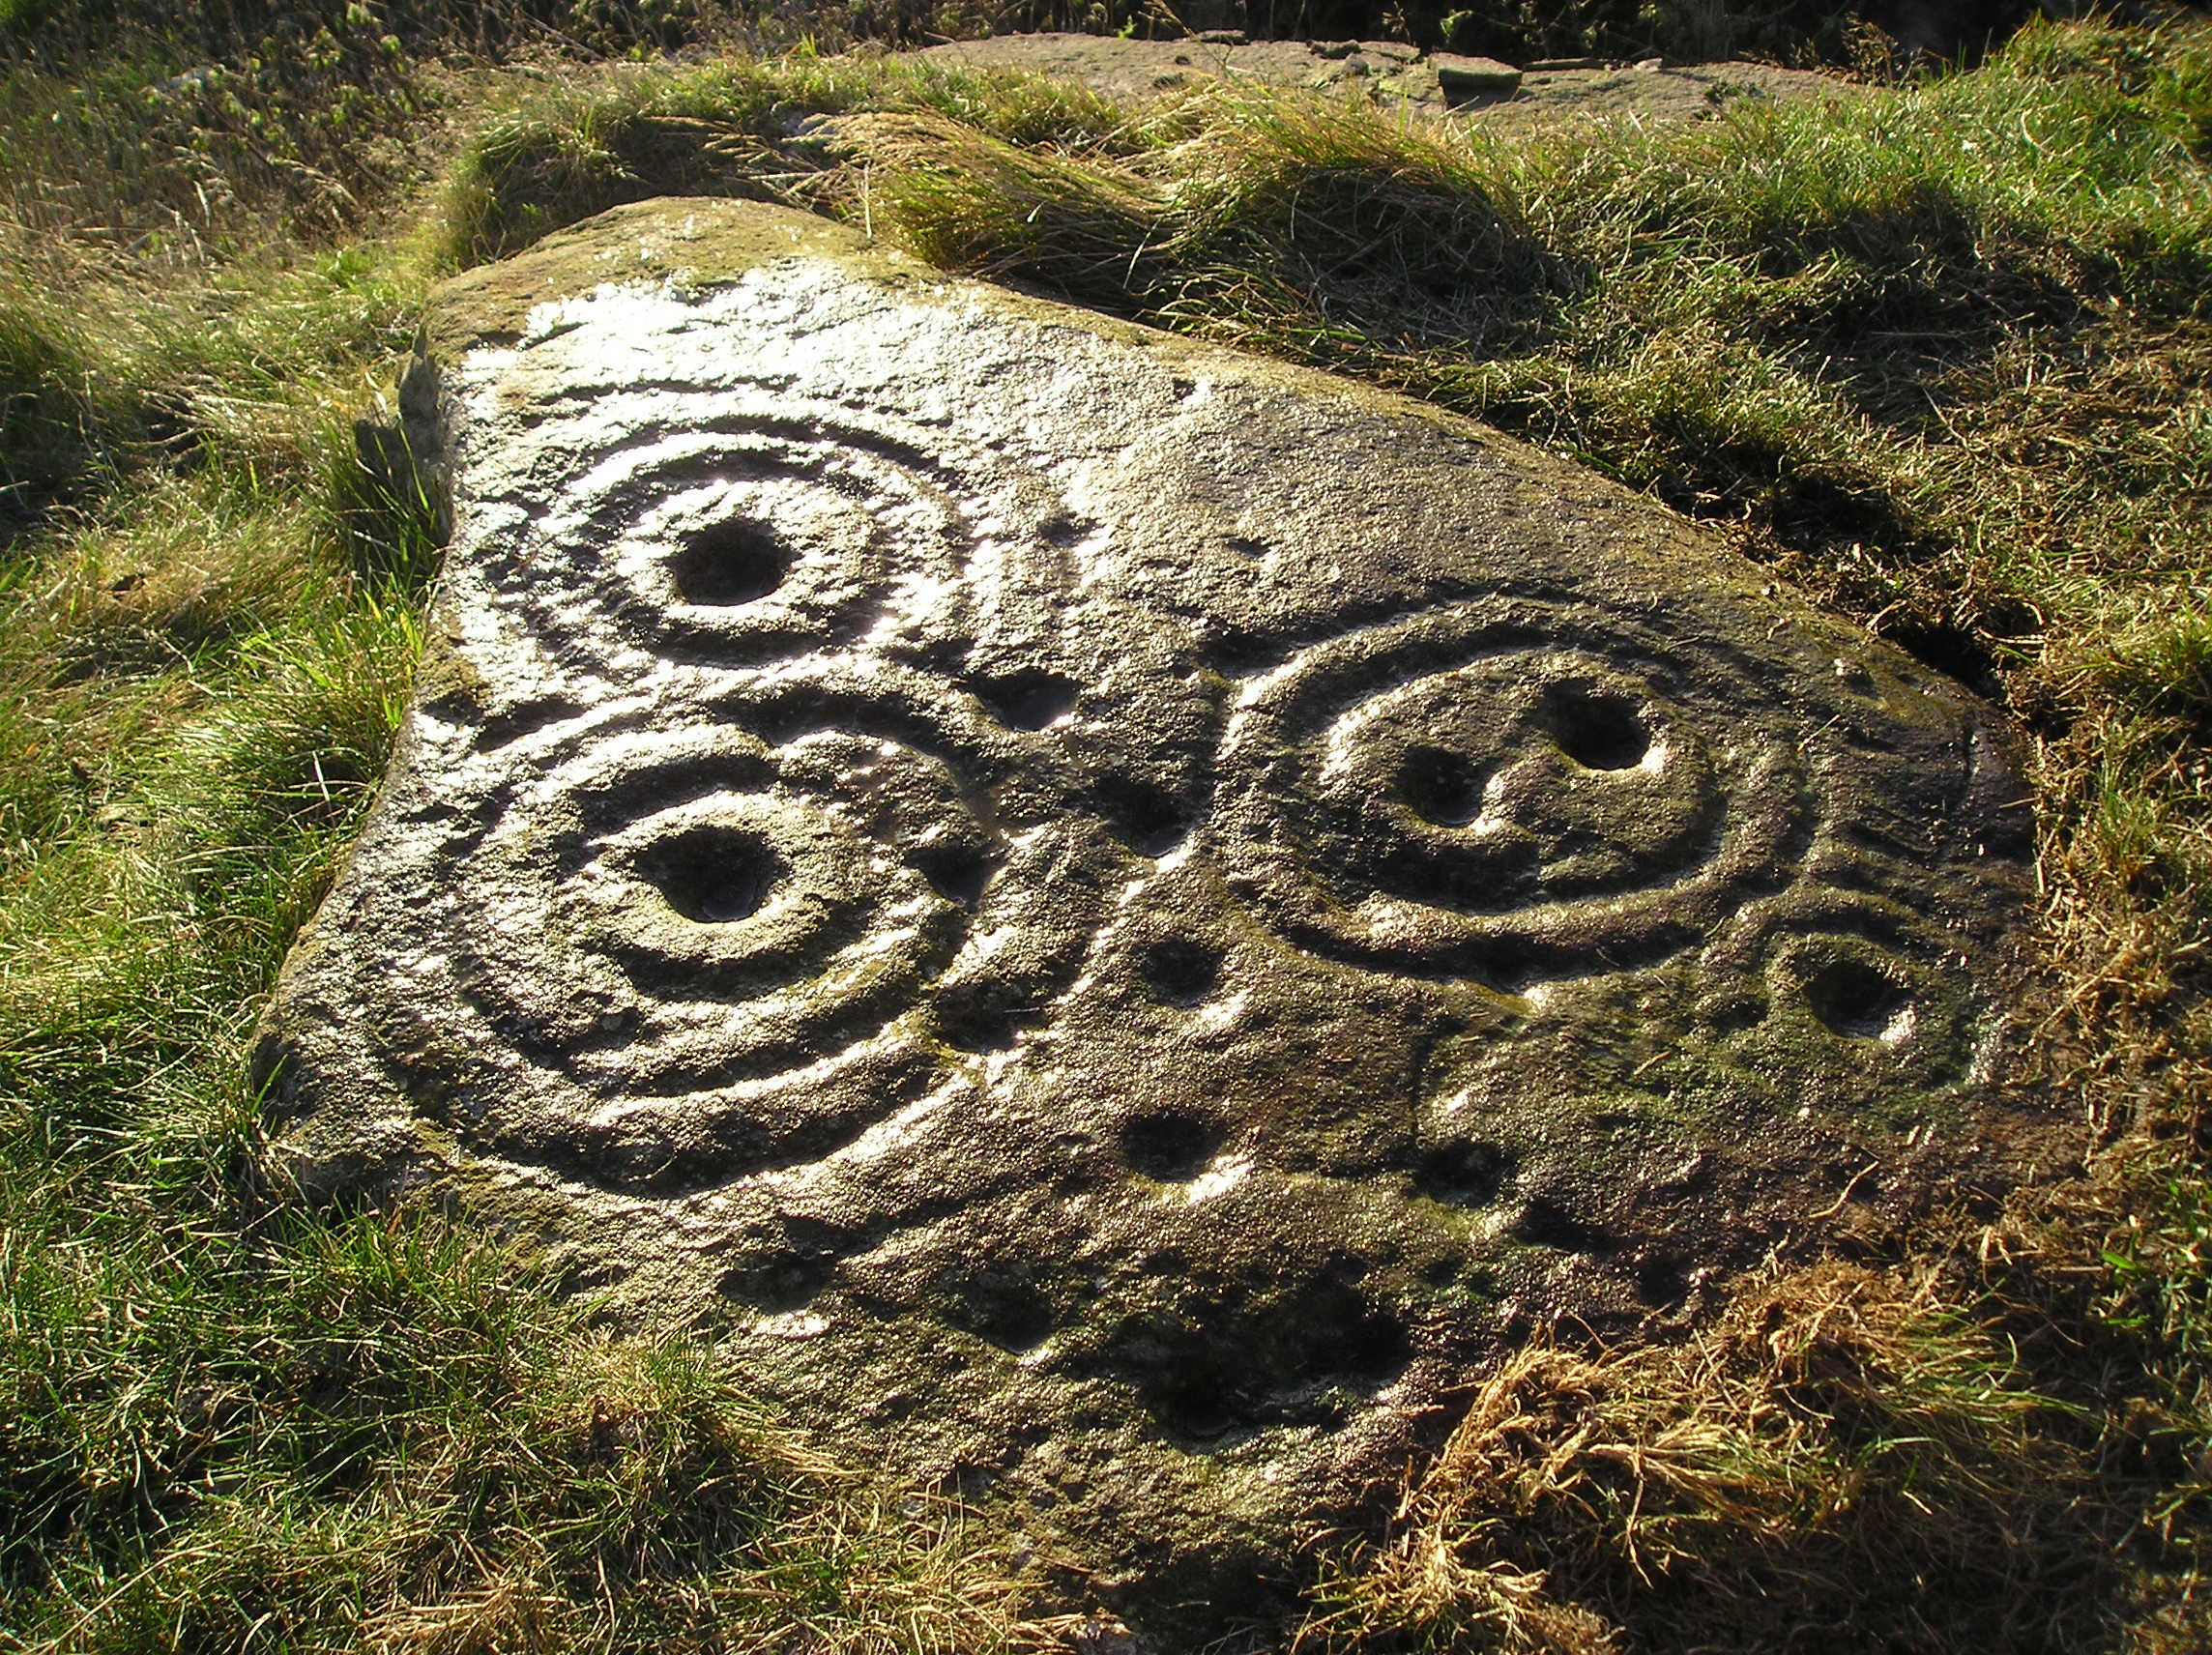 A piece of rock art discovered by George on Gallow Hill, just north of Dundee.